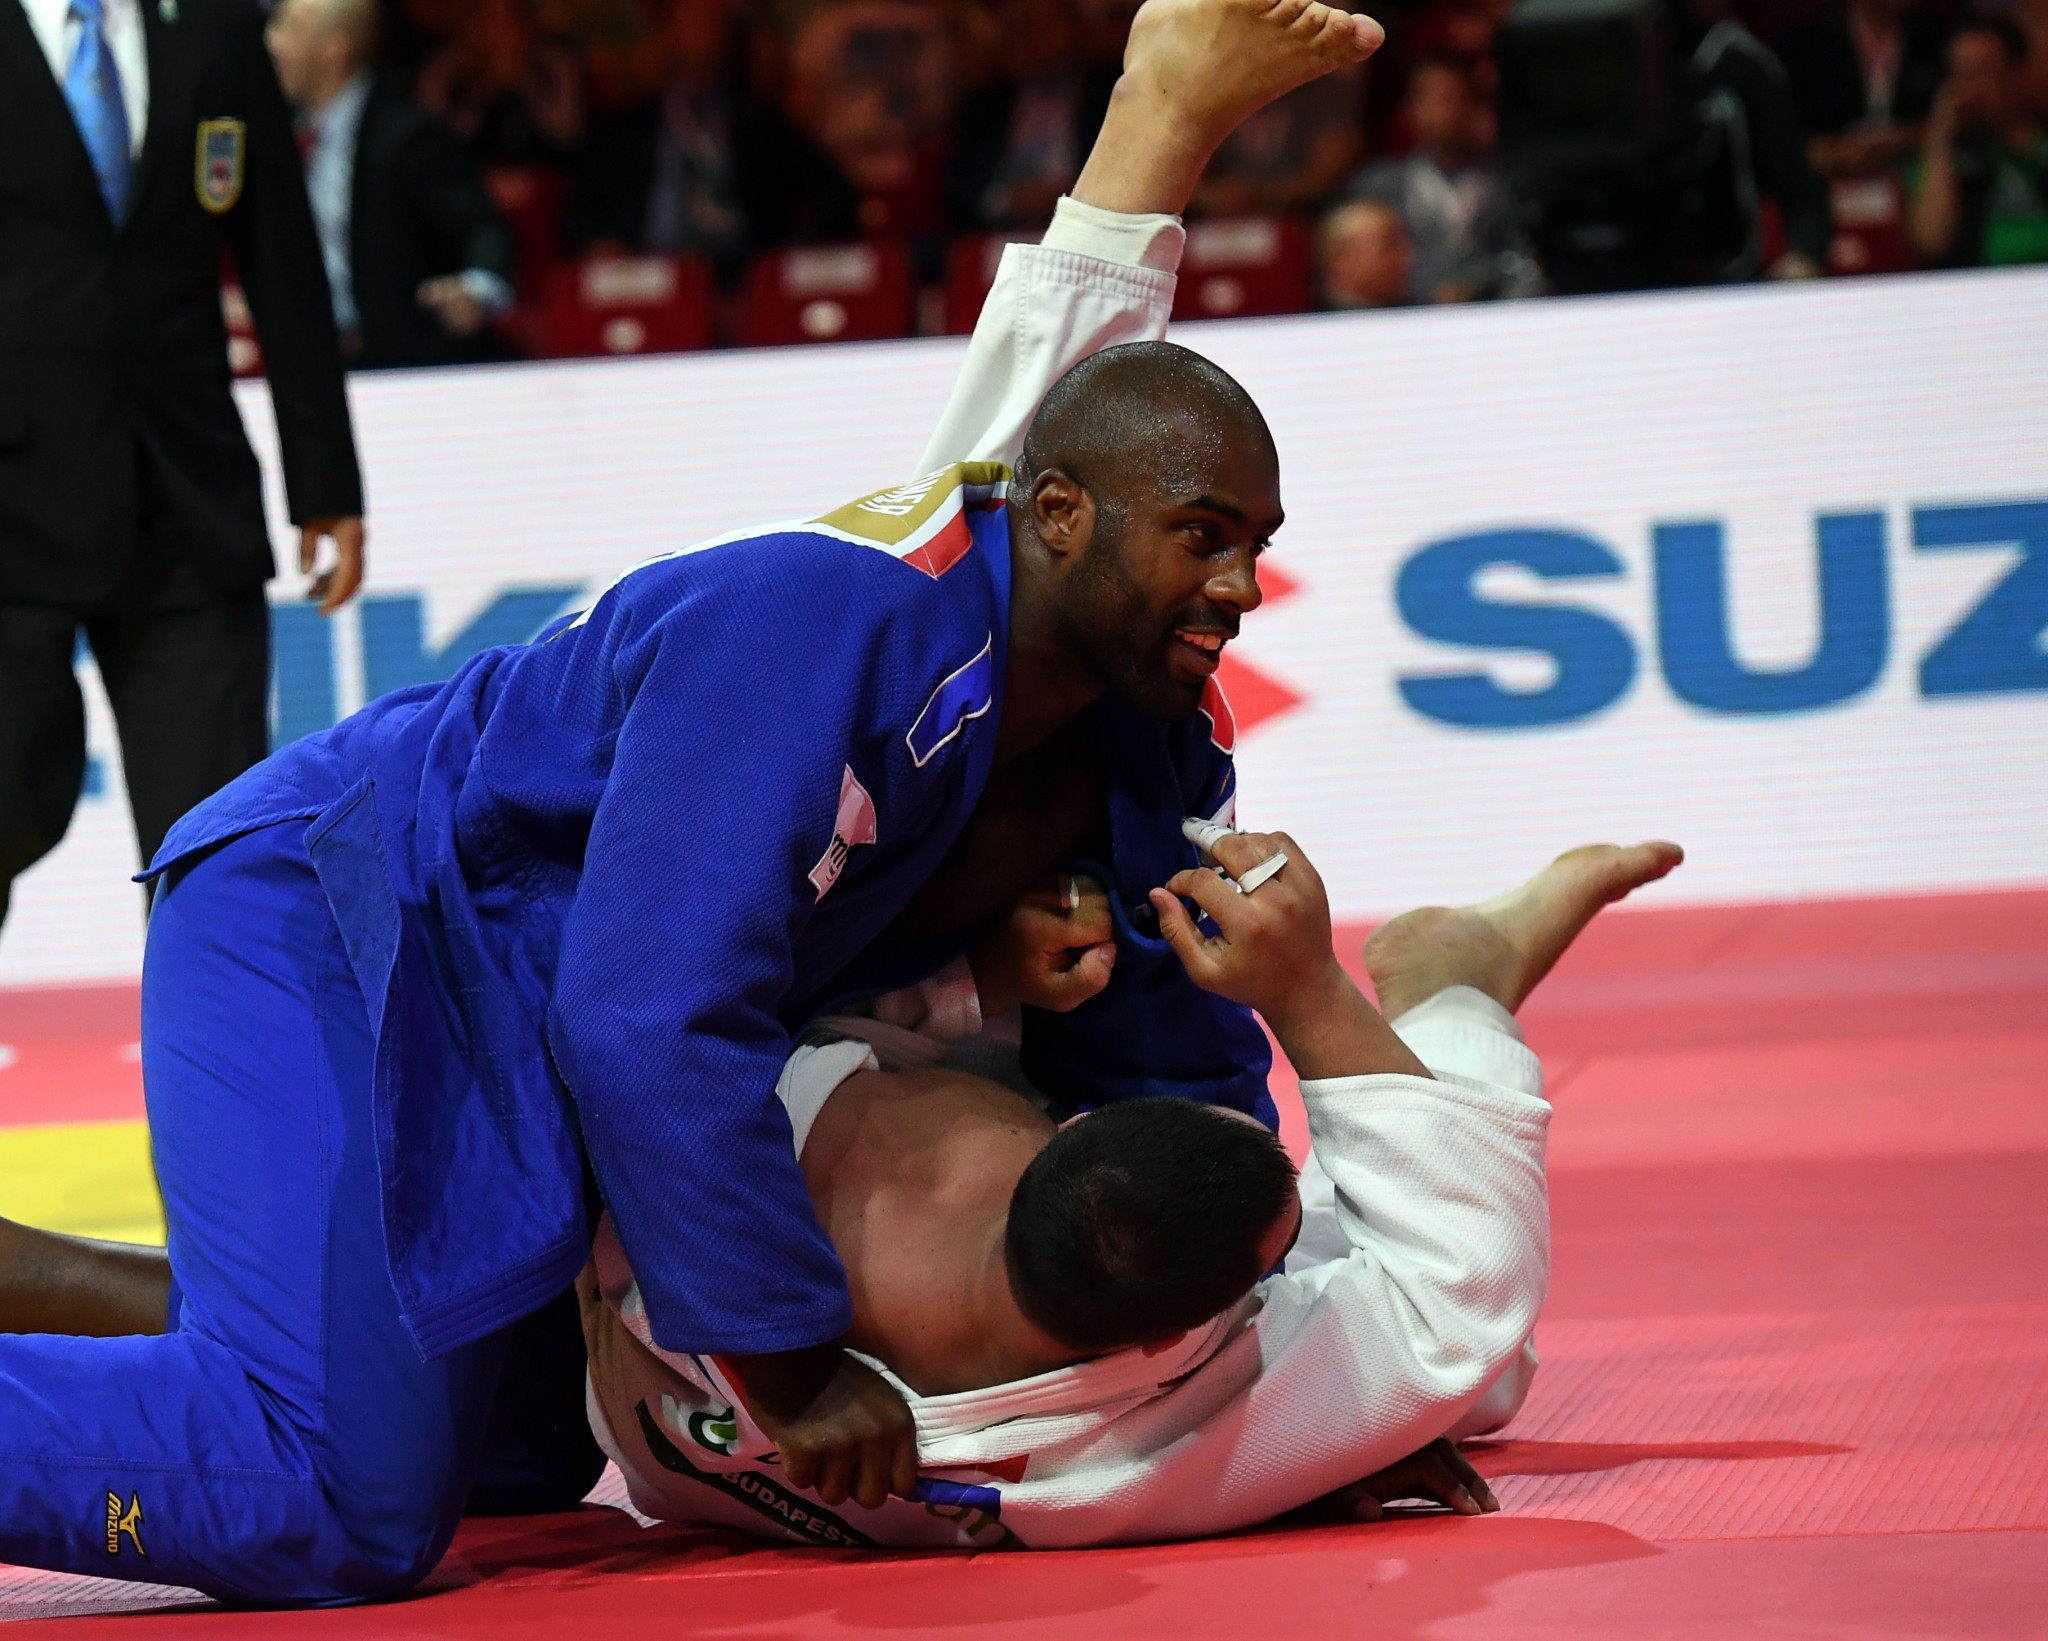 Riner set to make long-awaited return to action at IJF Grand Prix in Montreal